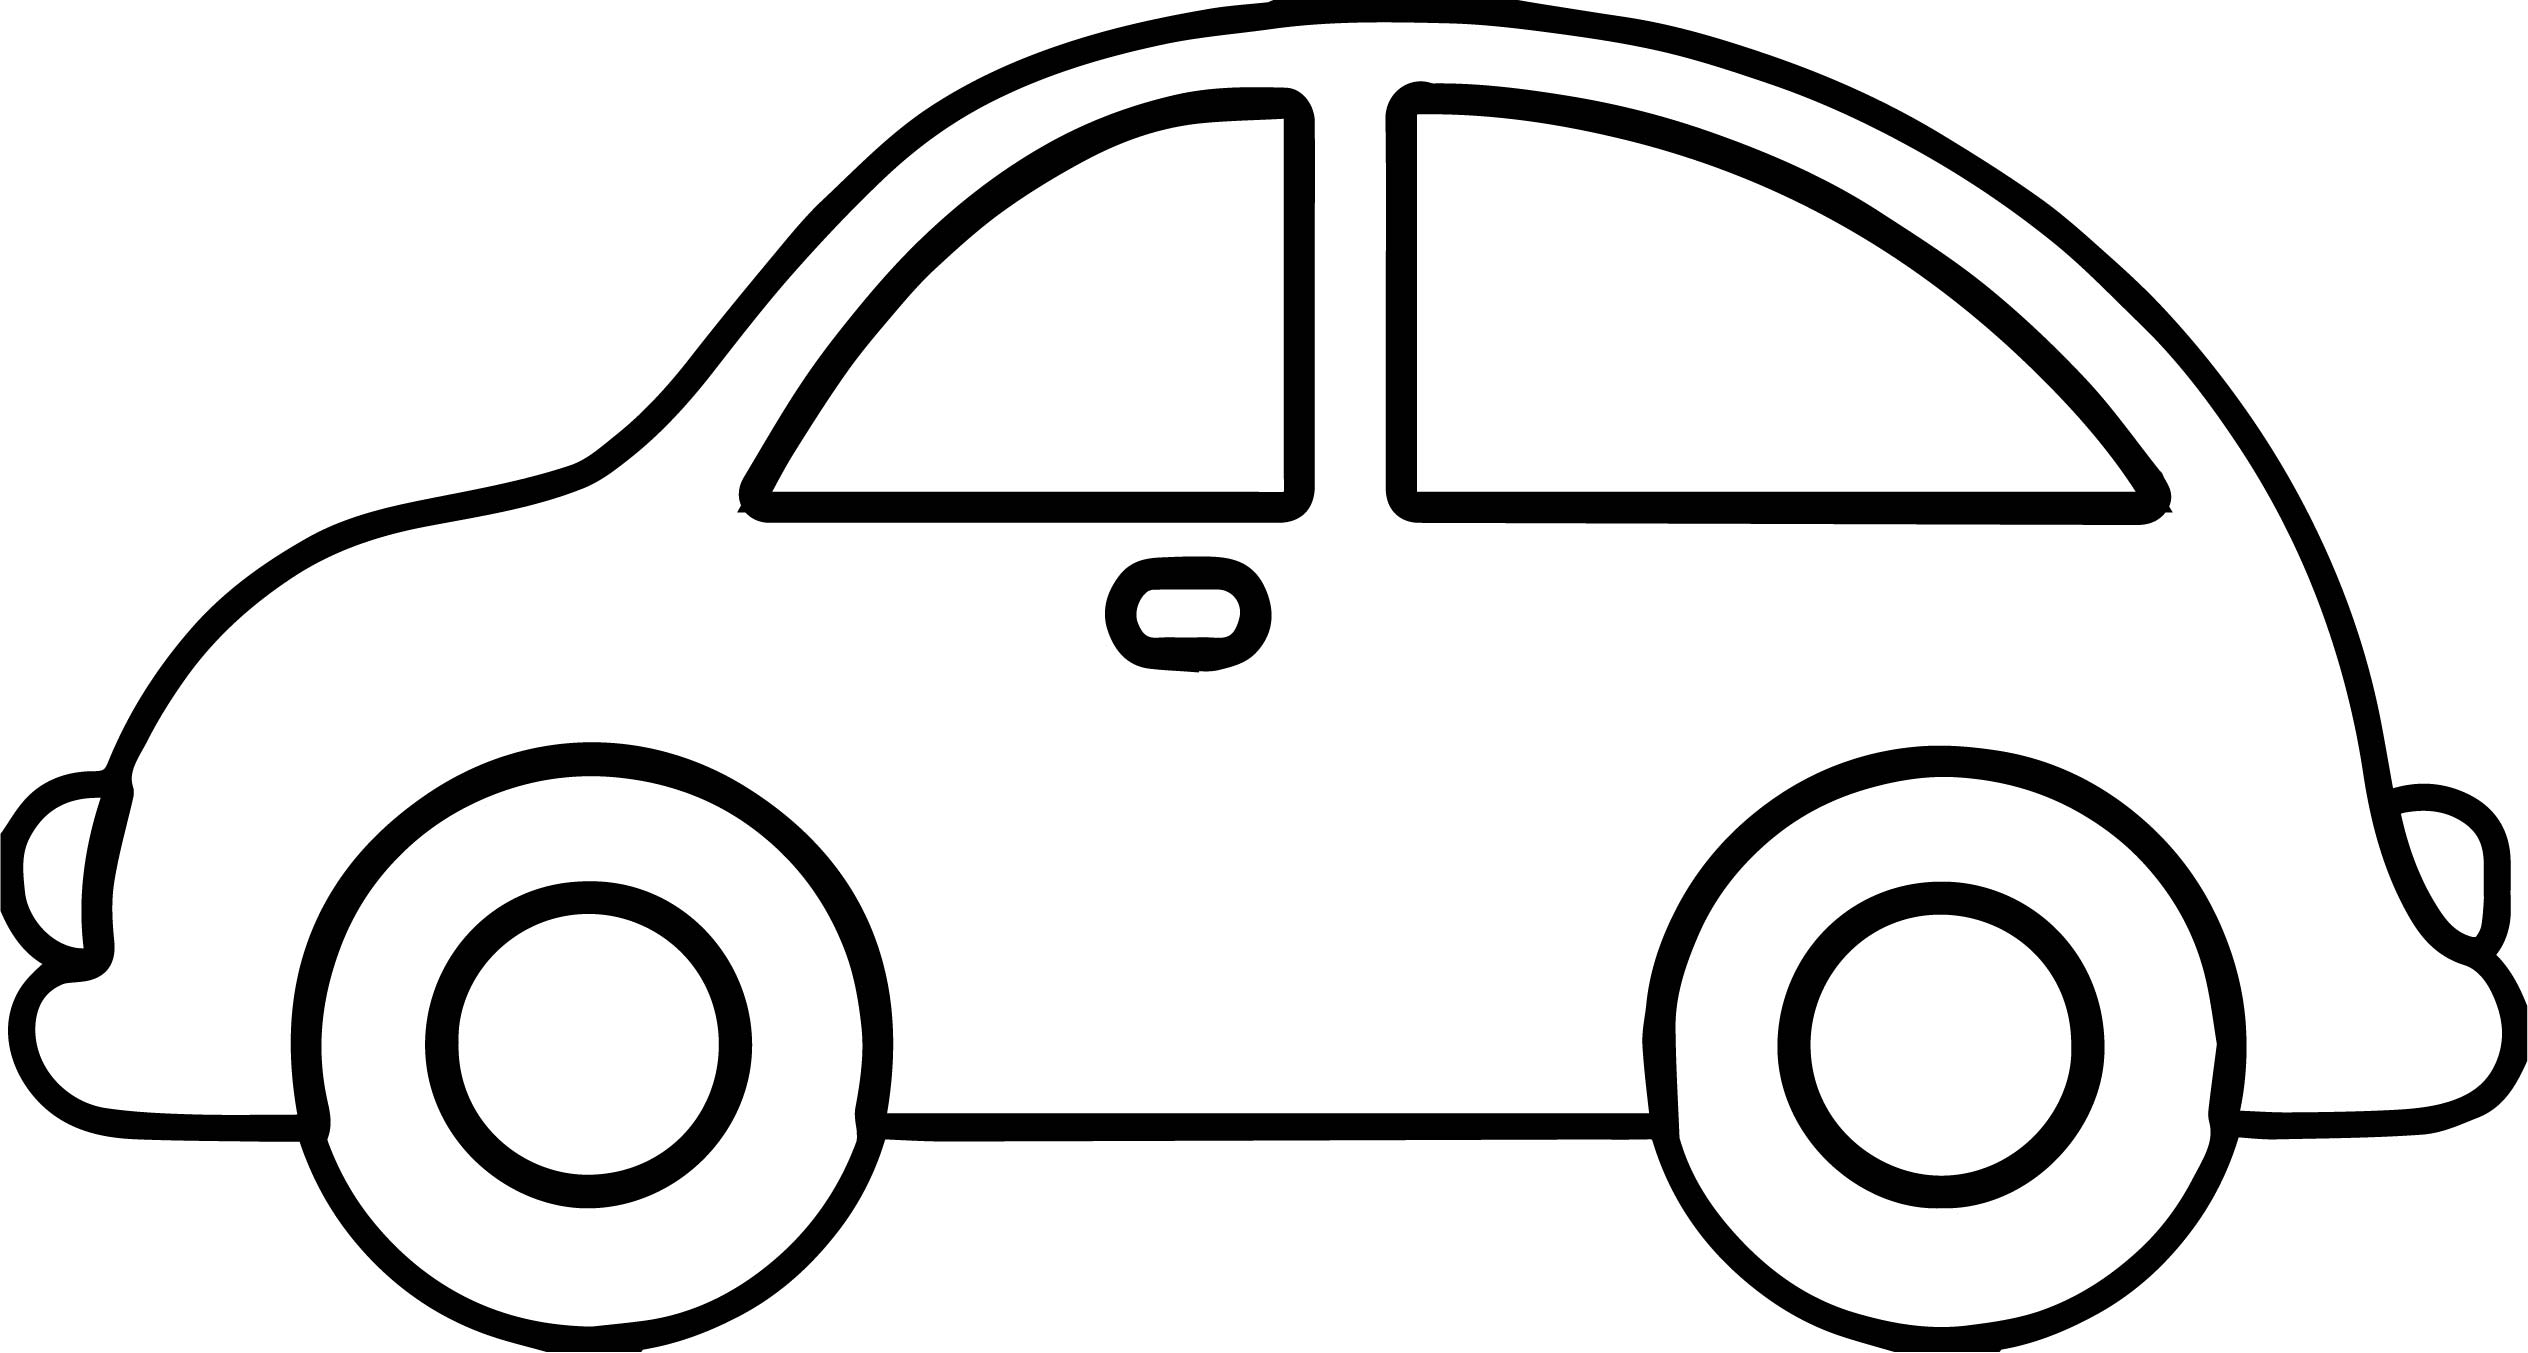 Basic Car Coloring Pages : Colouring pages of toy cars and trains coloring